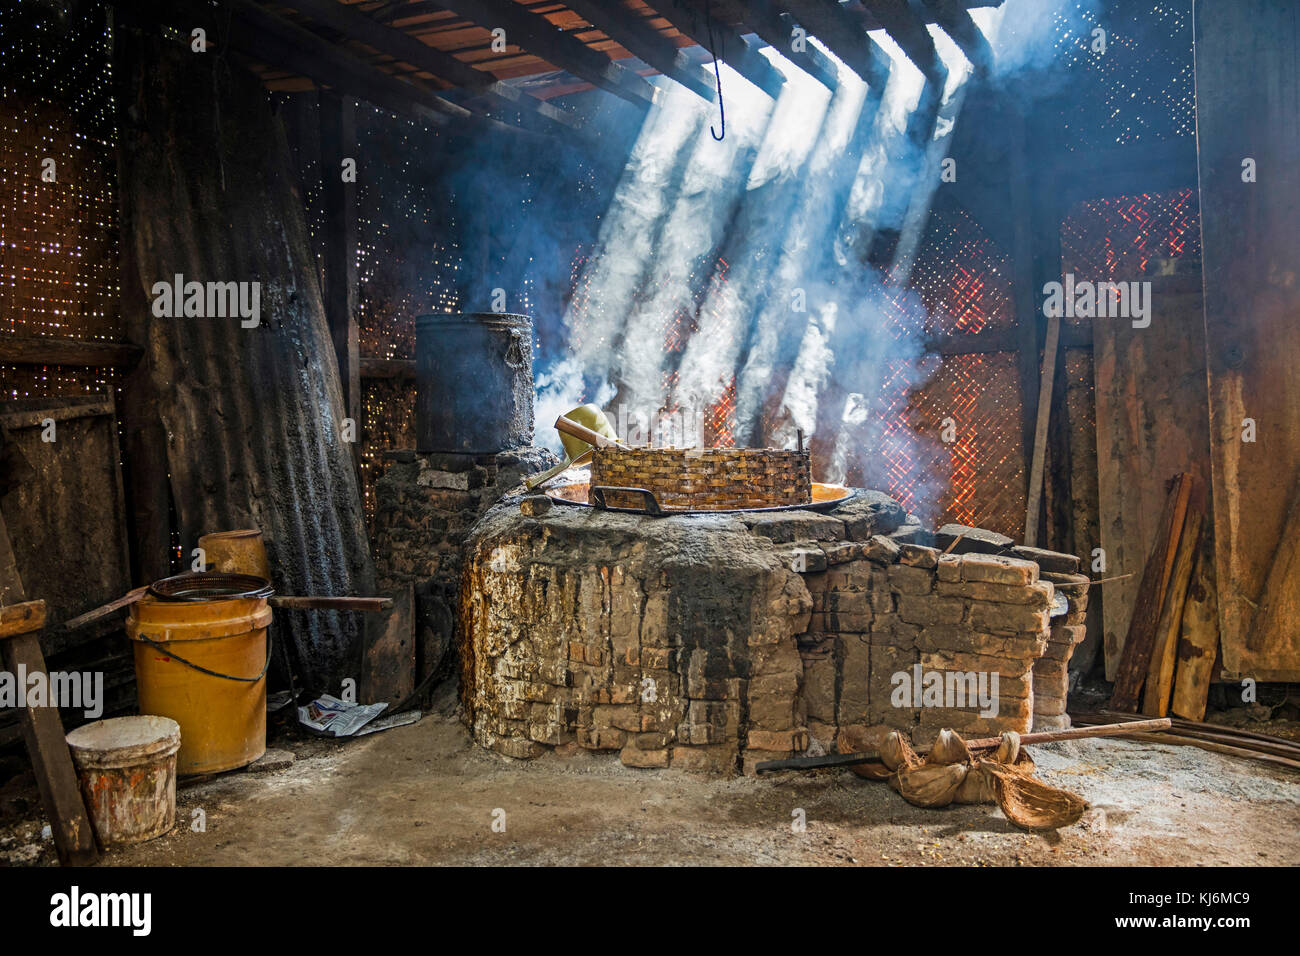 Primitive palm sugar factory boiling the collected sap near Pangandaran, West Java, Indonesia - Stock Image